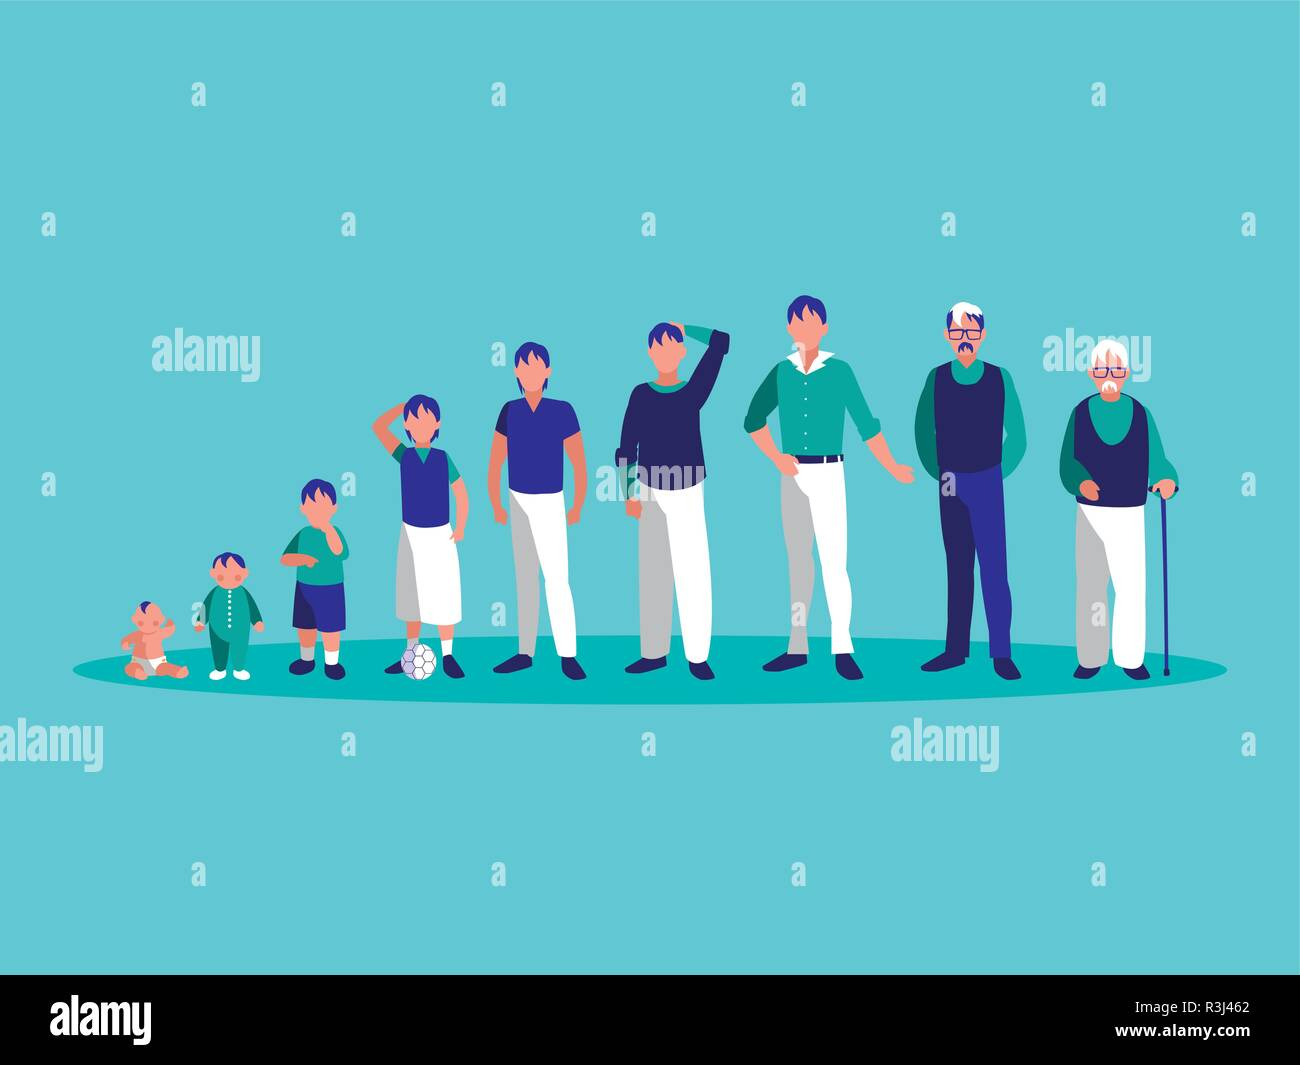 group of family members avatar character vector illustration design - Stock Vector